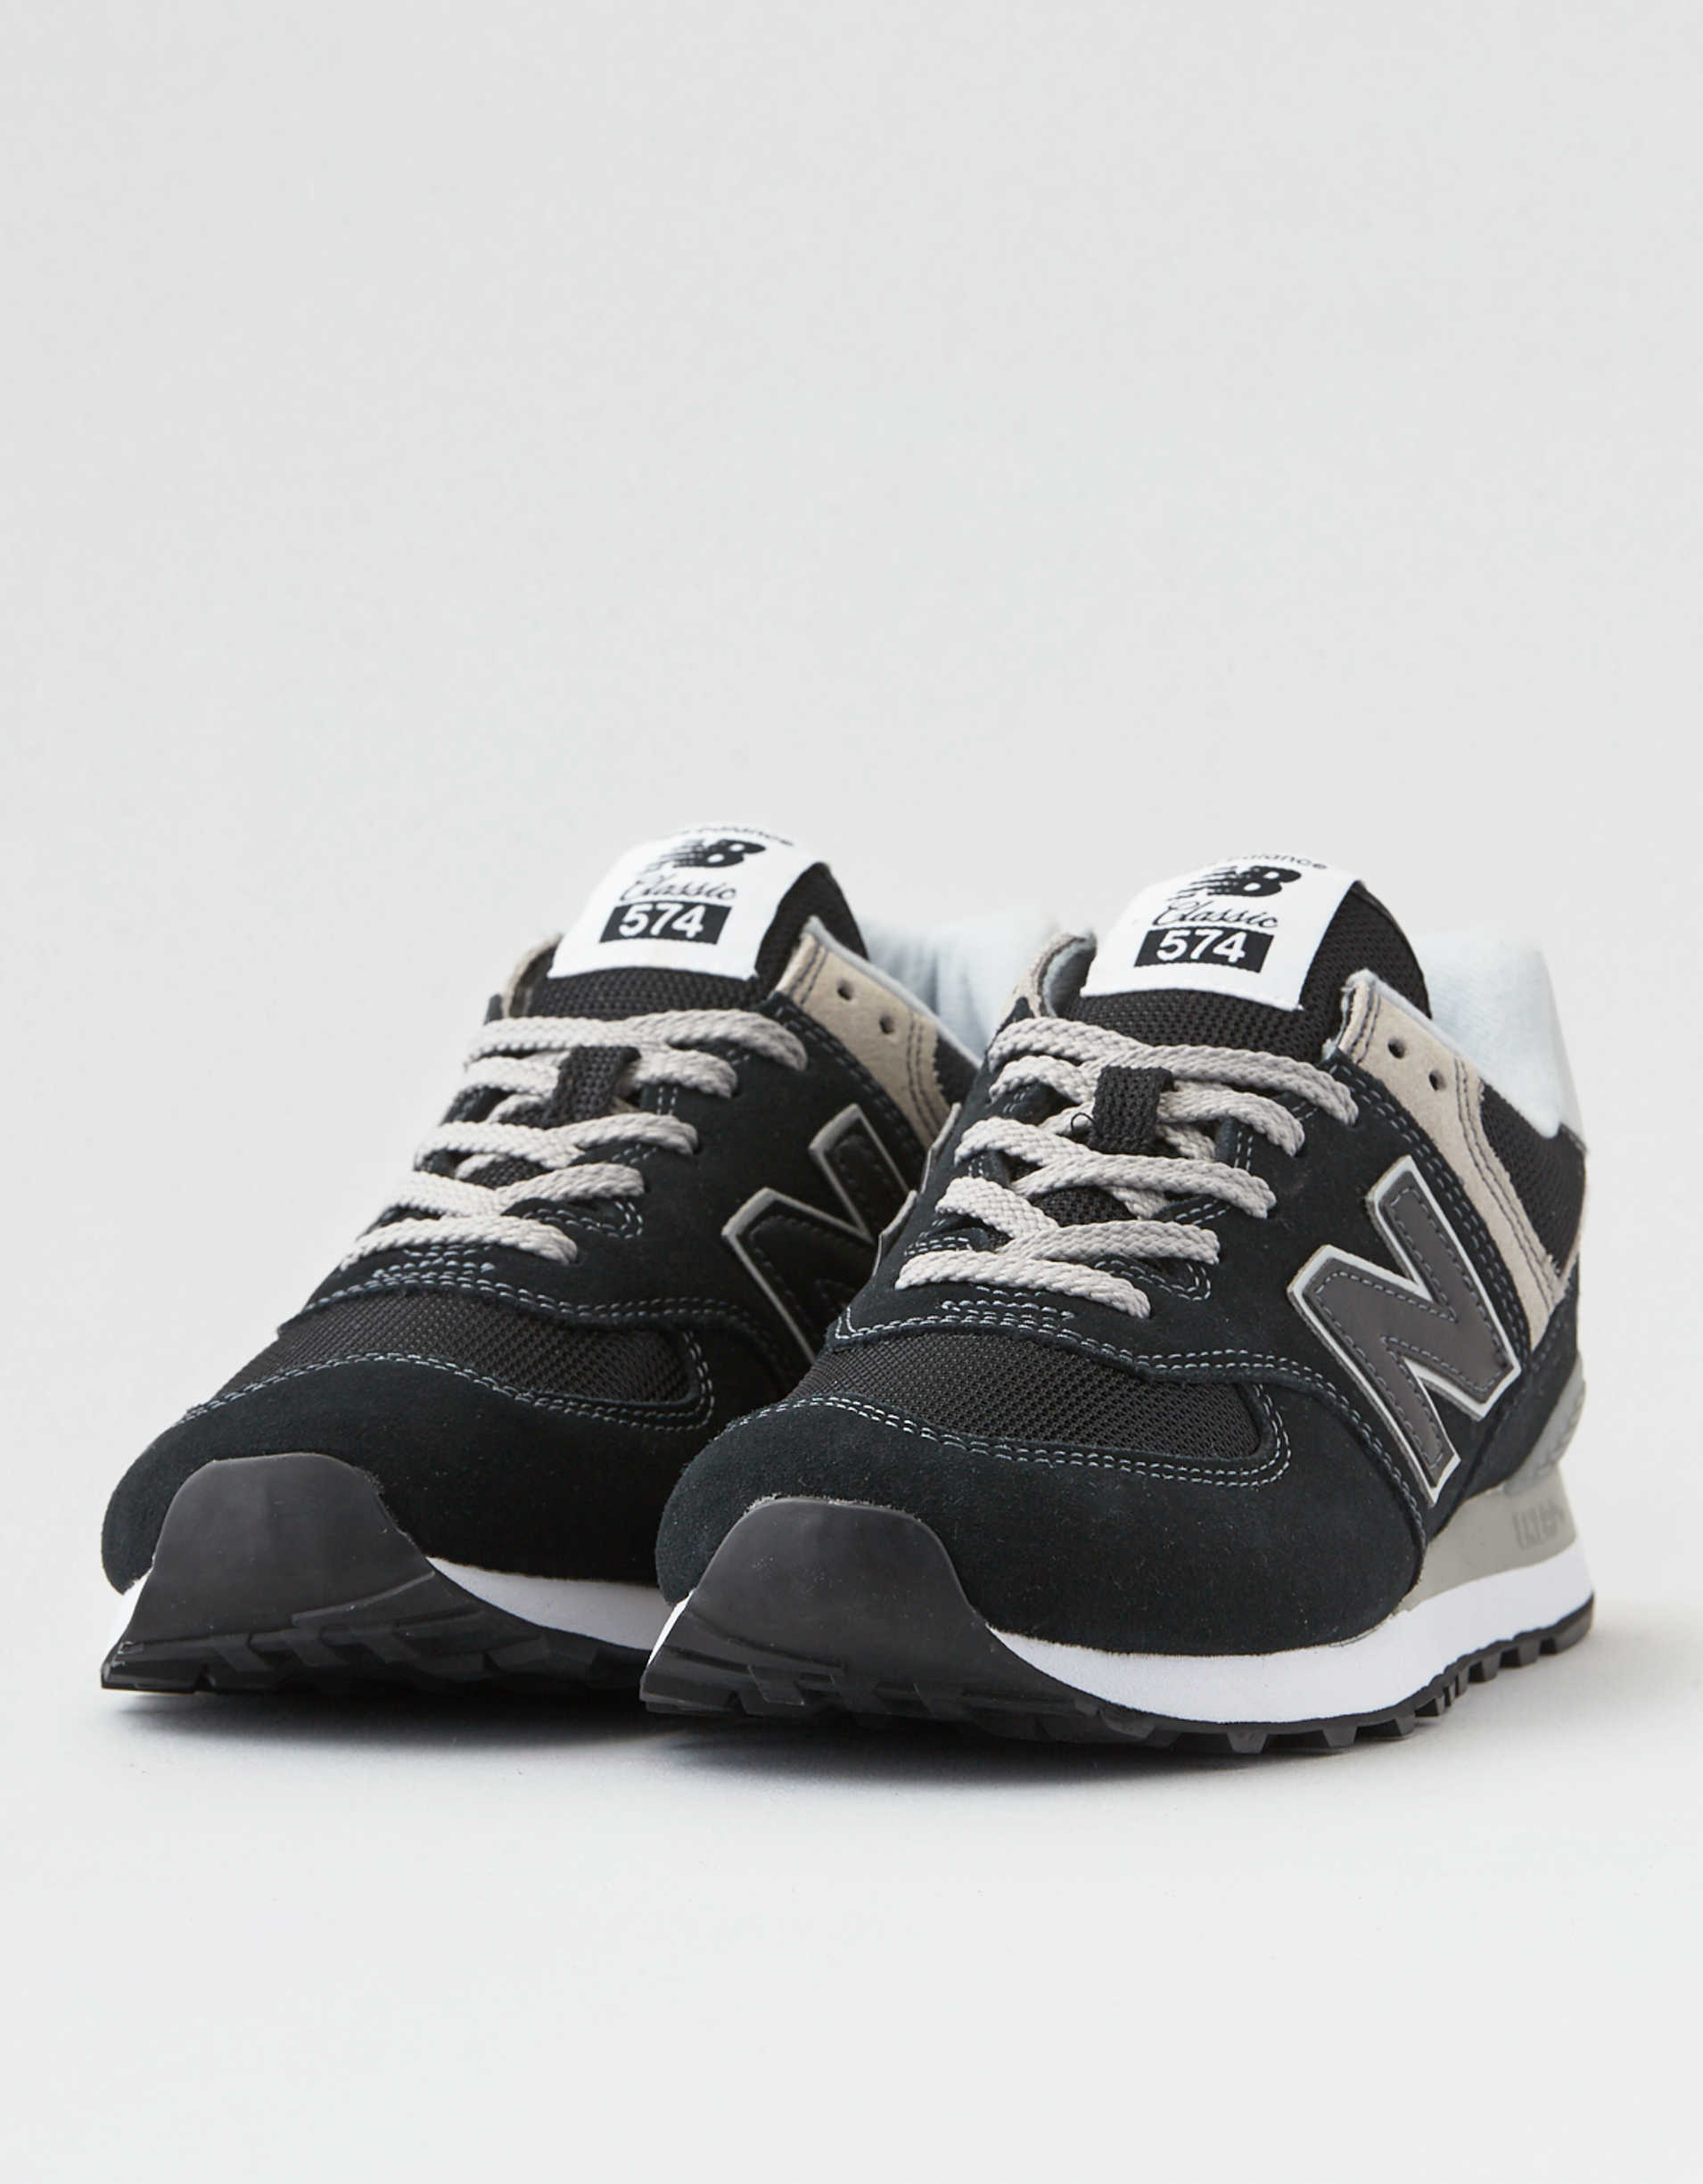 New Balance Men's 574 Core Sneaker